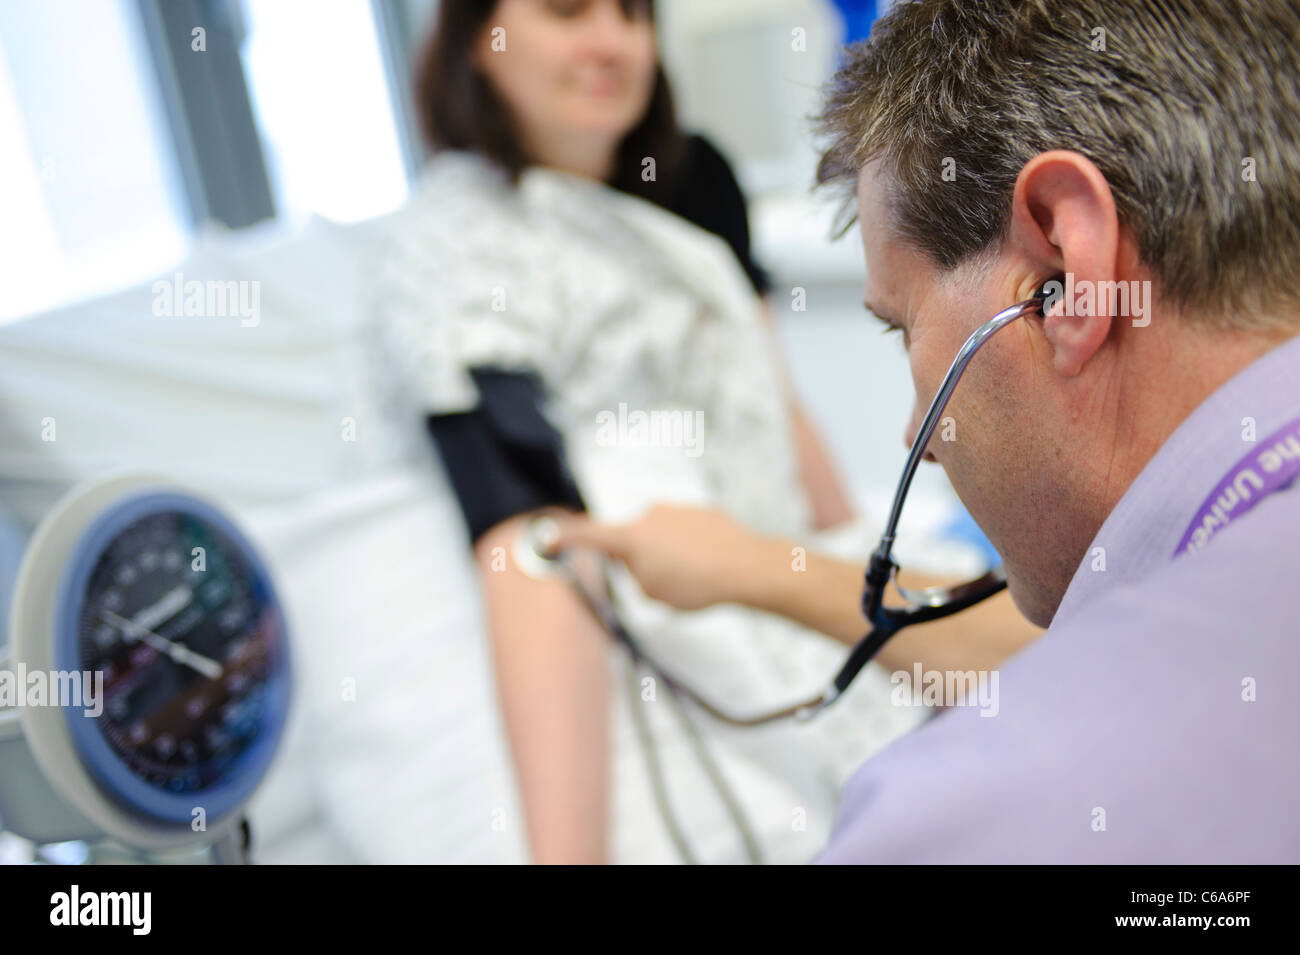 doctor checking blood pressure of patient and using stethoscope hospital bed patient and doctor not identifiable - Stock Image